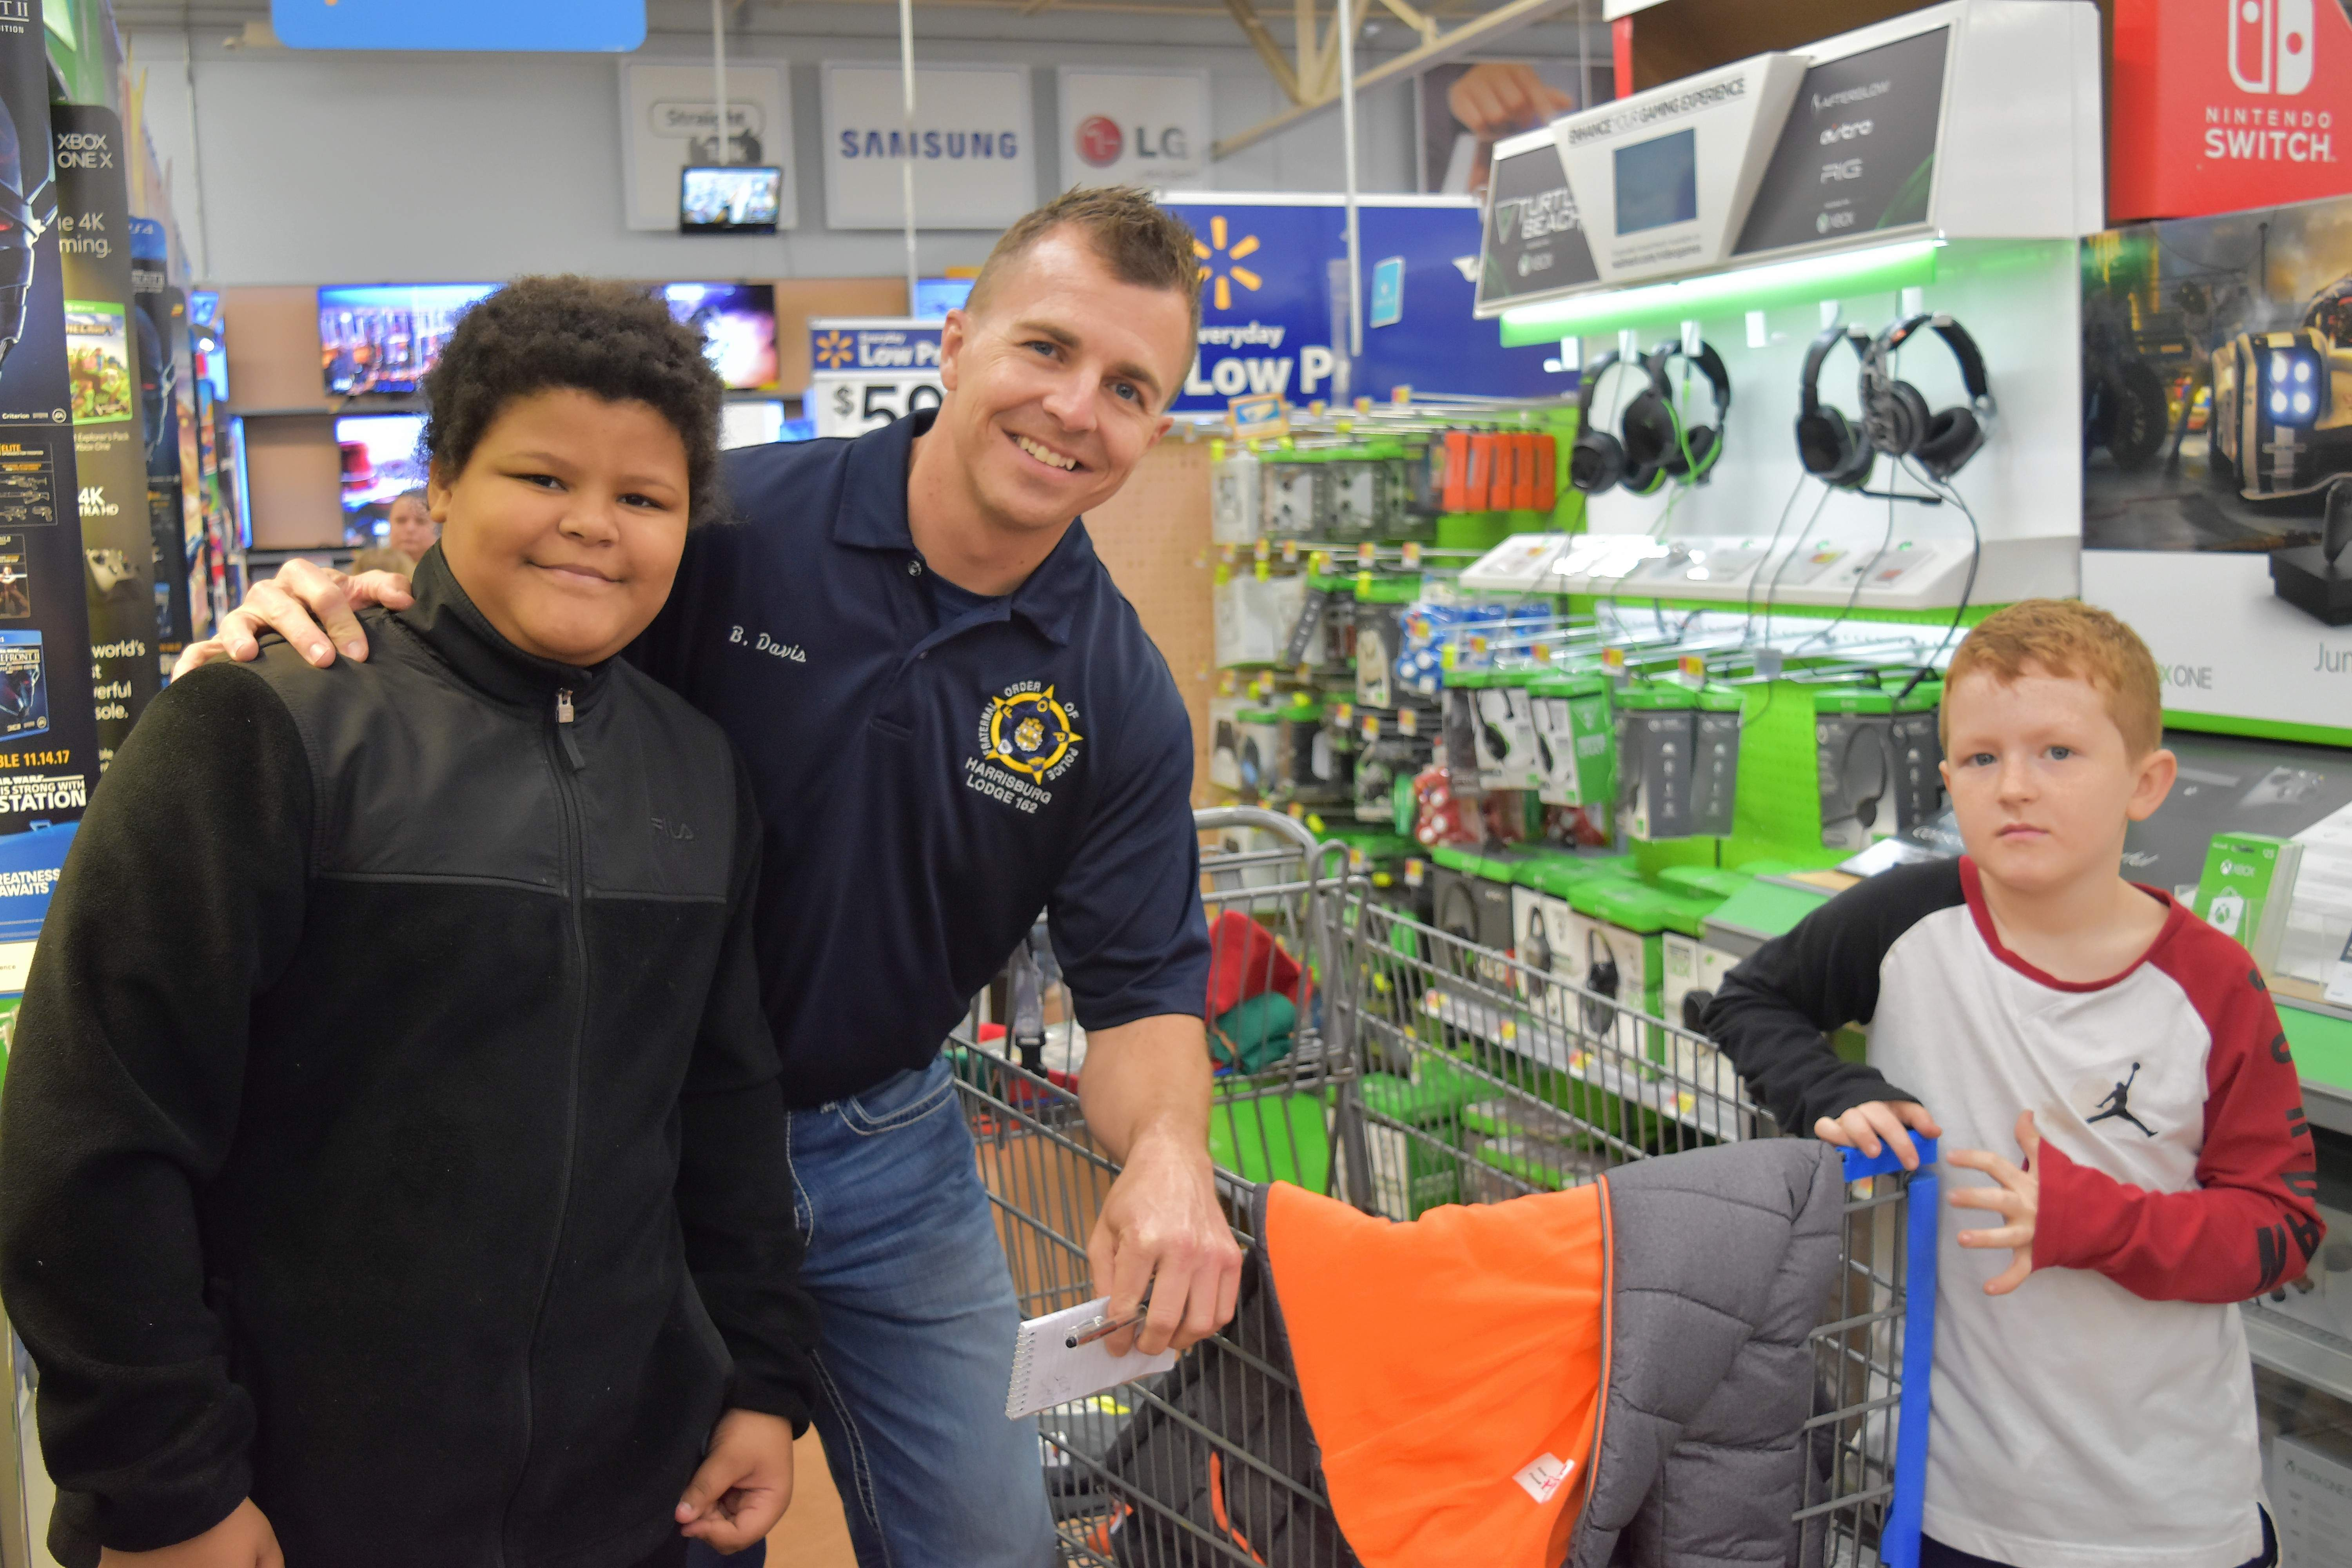 Harrisburg Police Department Officer Brent Davis shops with Zay Hortin, left, and Parker Miller at Shop With a Cop Saturday at Wal-Mart in Harrisburg.